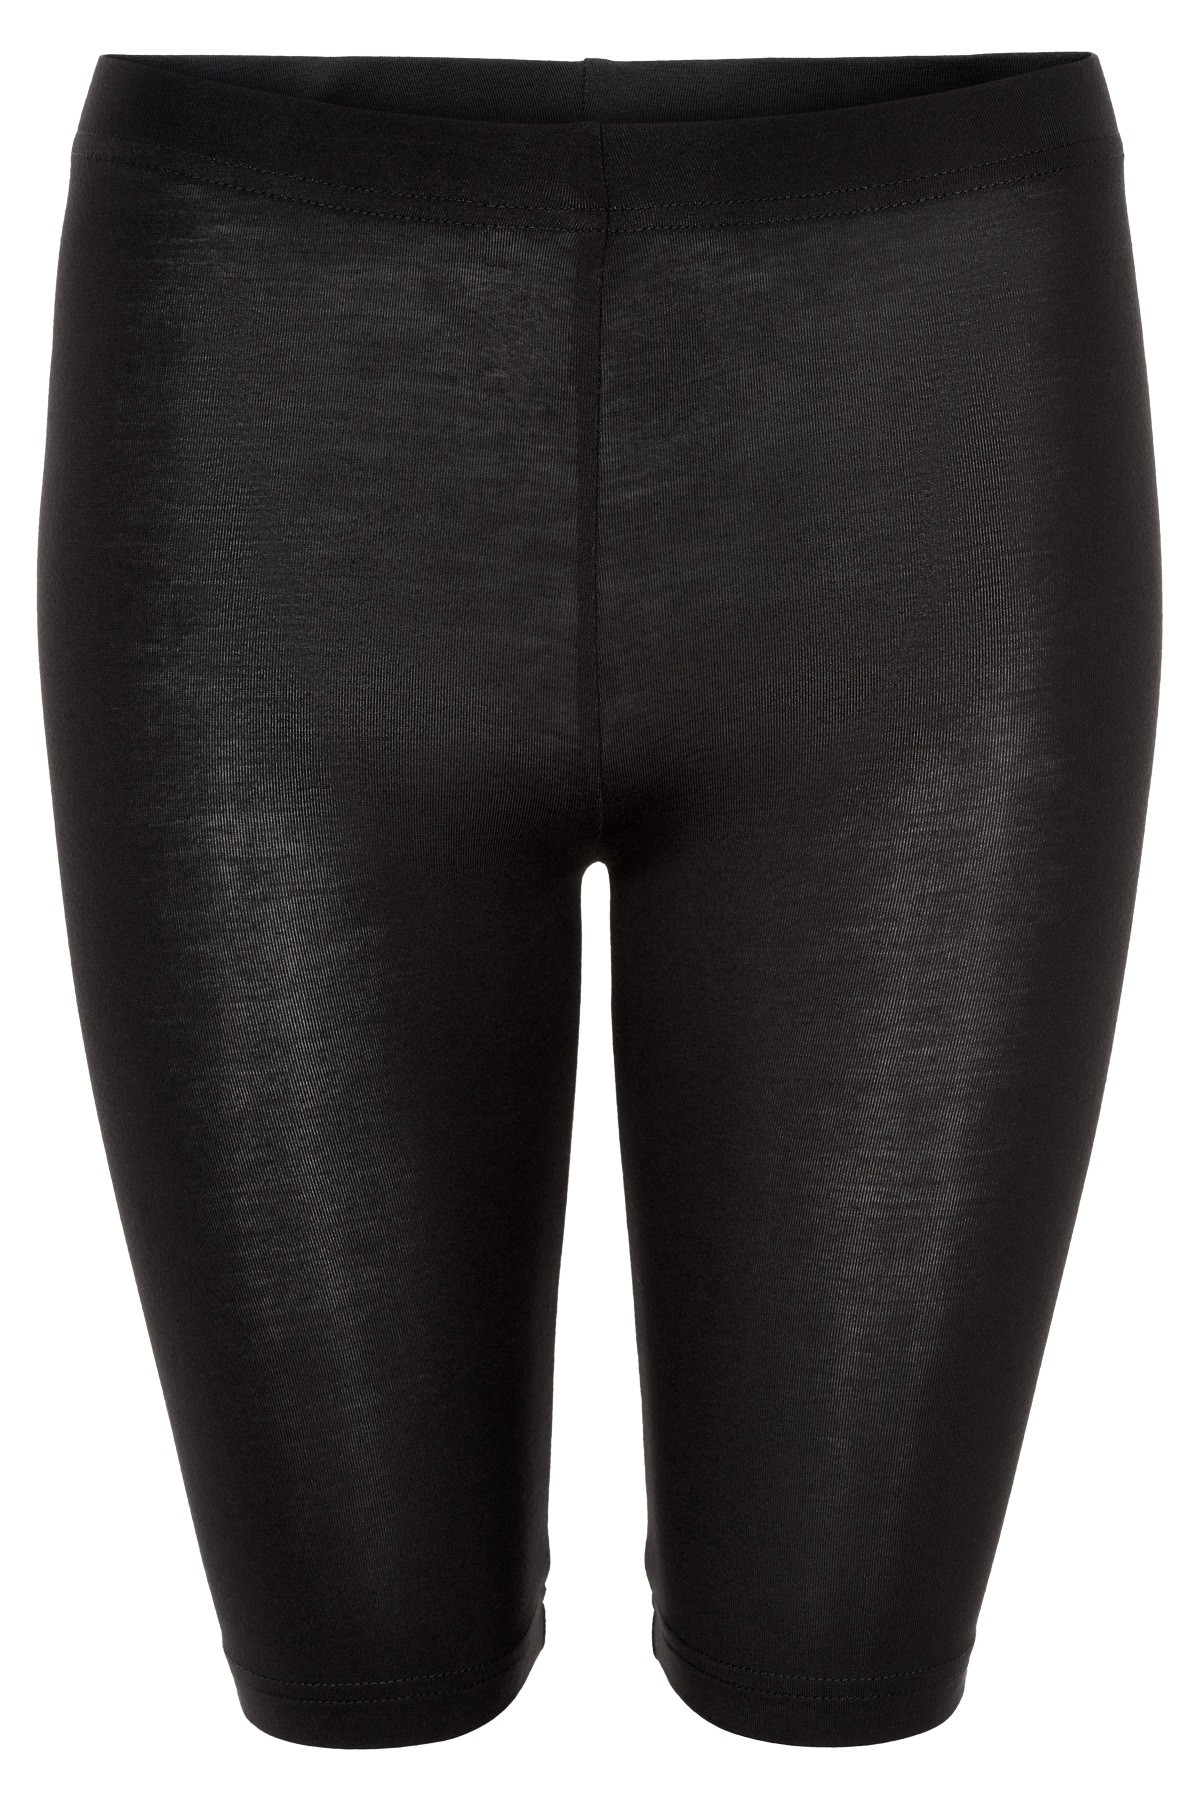 NOA NOA SHORT LEGGINGS 1-9349-2 00000 (Black, XXS)